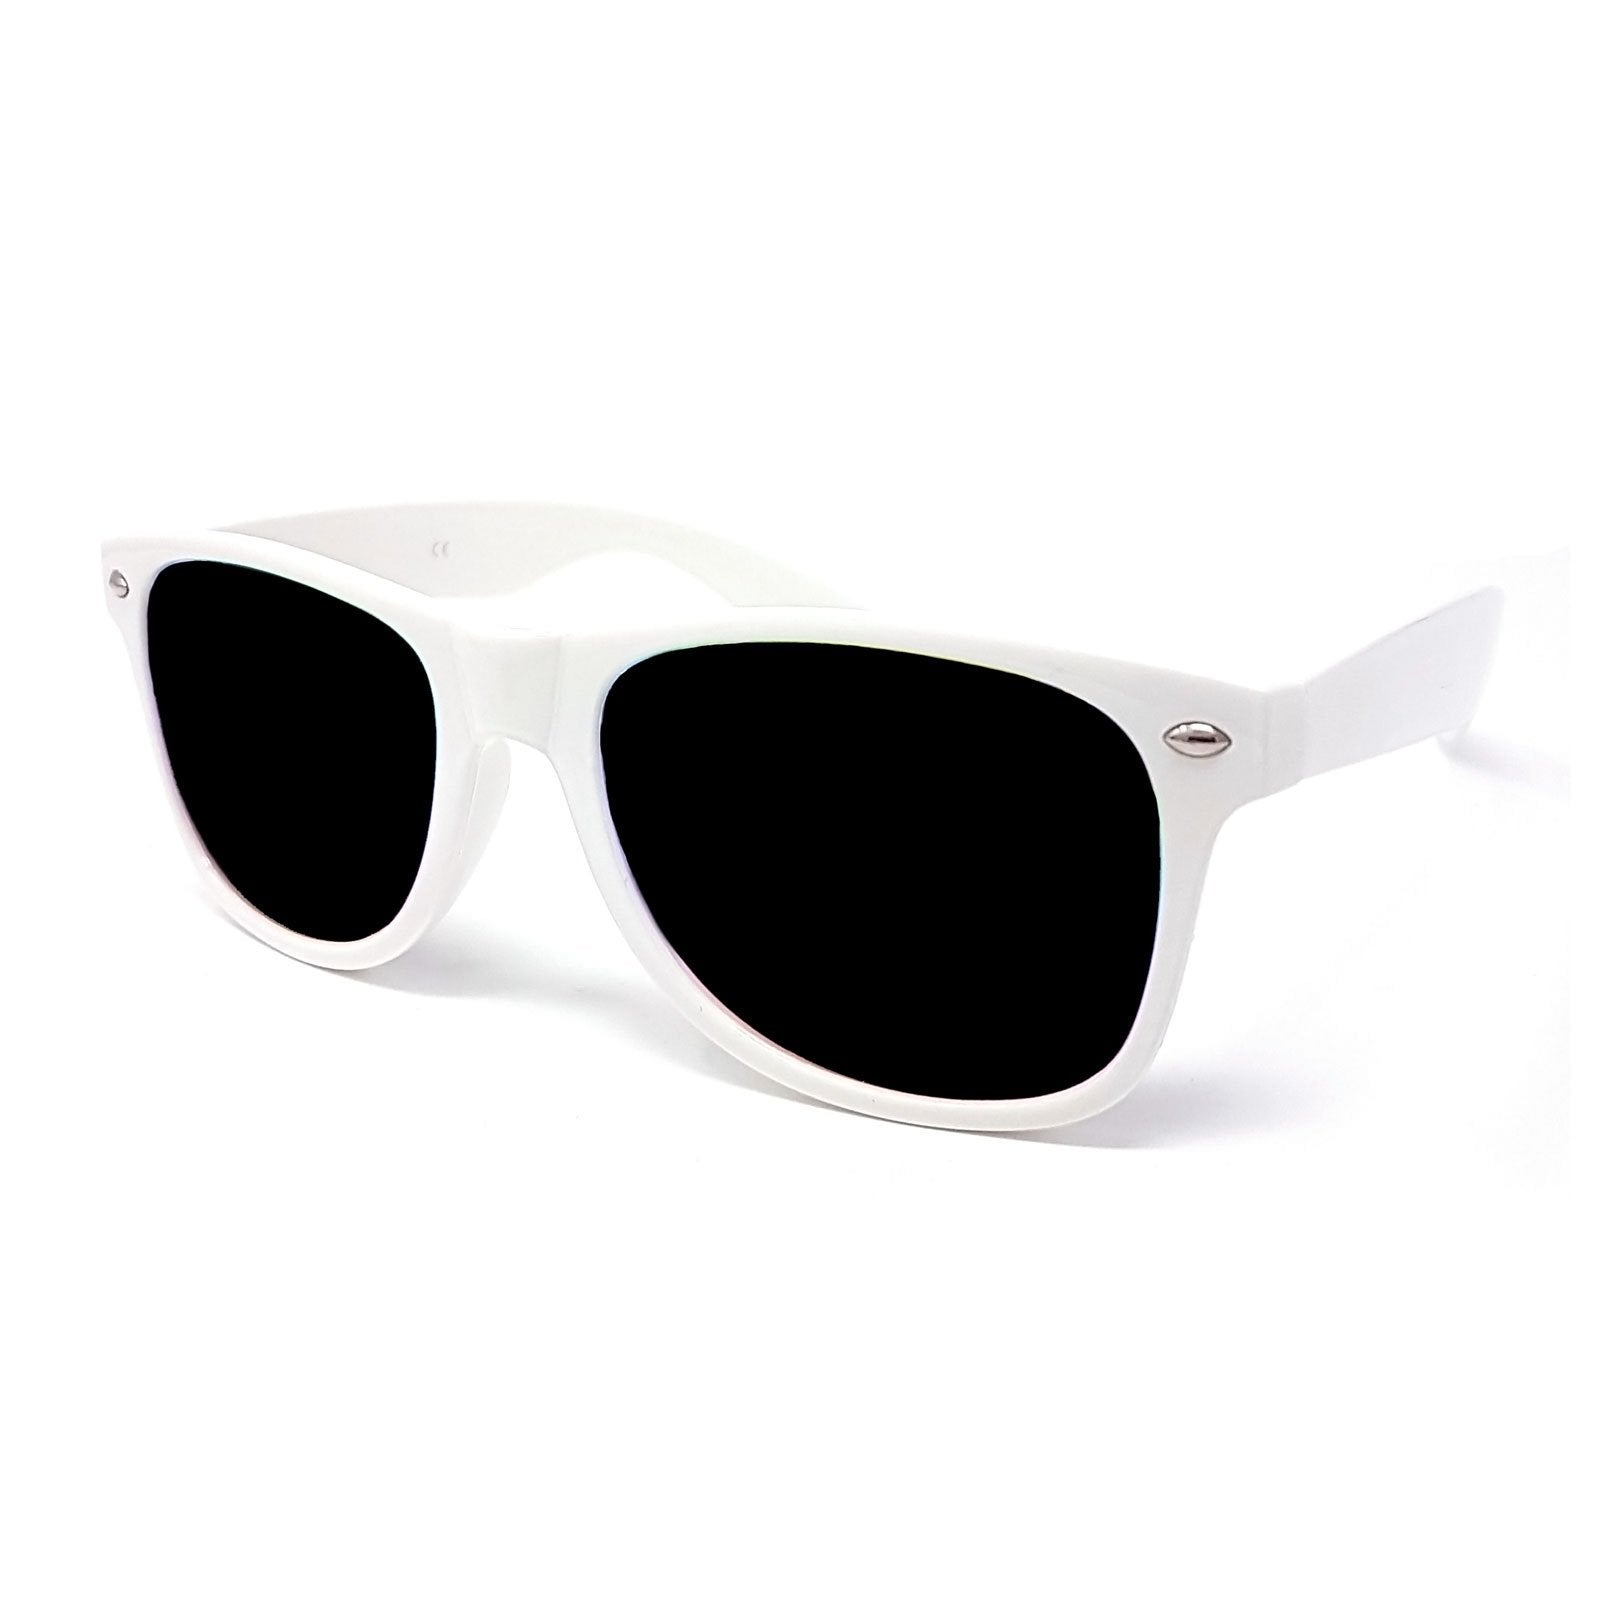 Wholesale Classic Sunglasses - White Frame, Black Lens